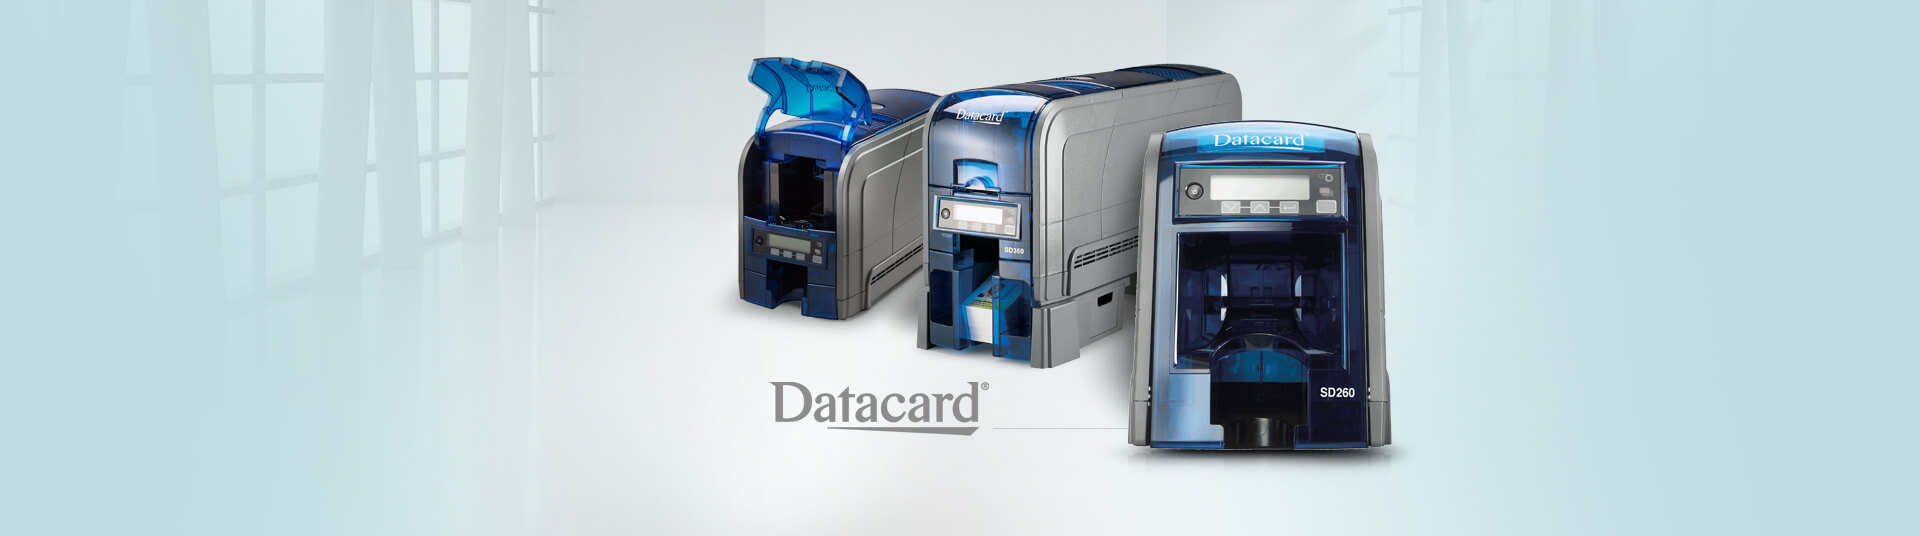 Datacard Photo ID Printers